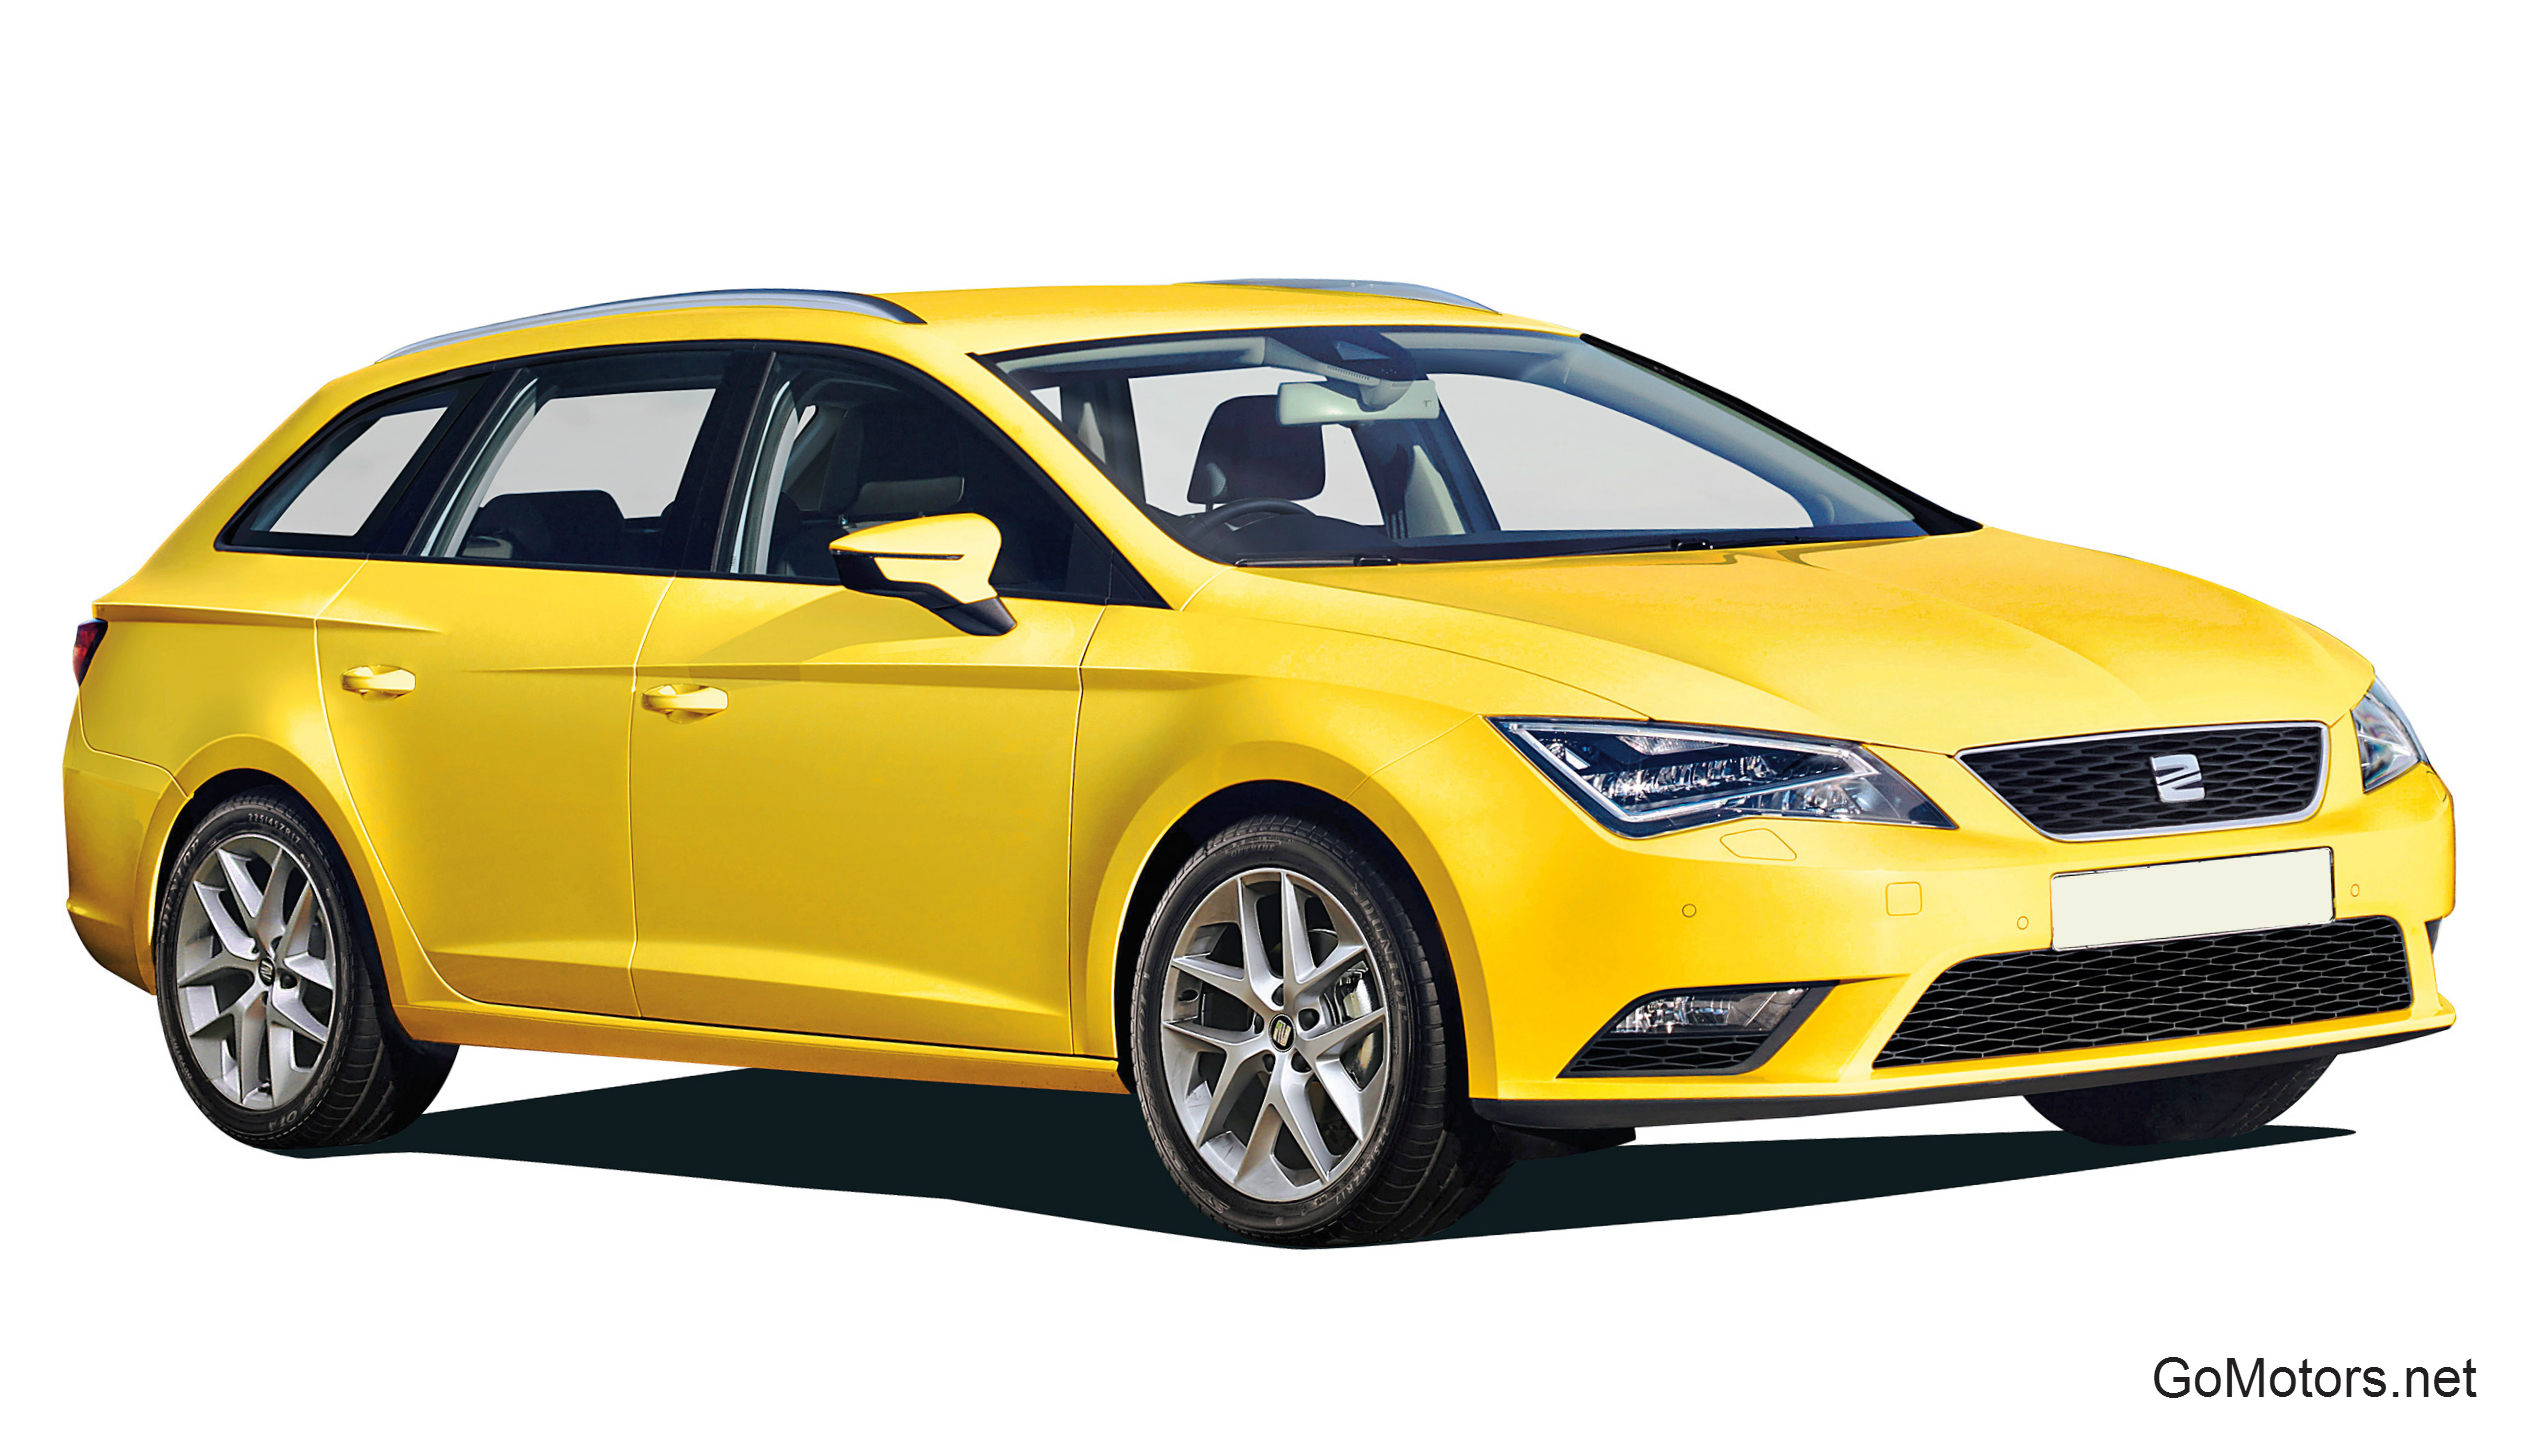 seat leon st 2014 reviews seat leon st 2014 car reviews. Black Bedroom Furniture Sets. Home Design Ideas